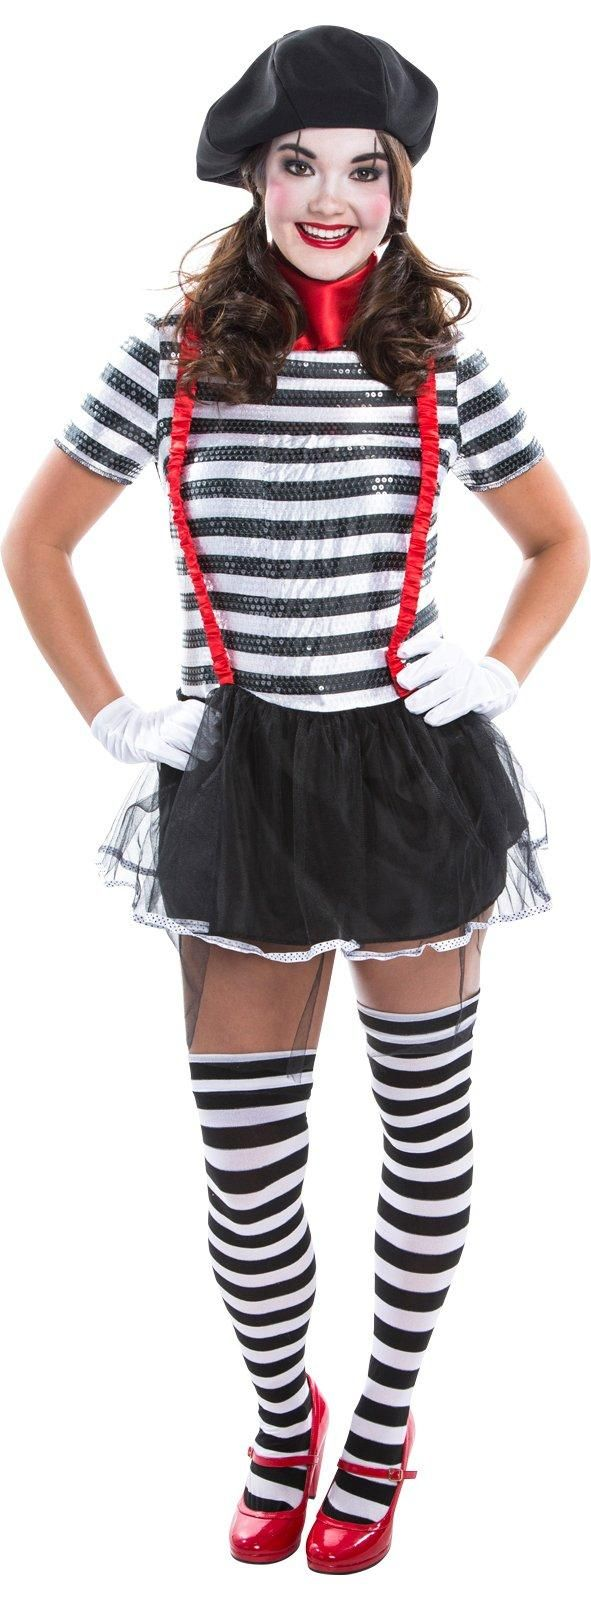 Womens Mime Costume from Circus costumes